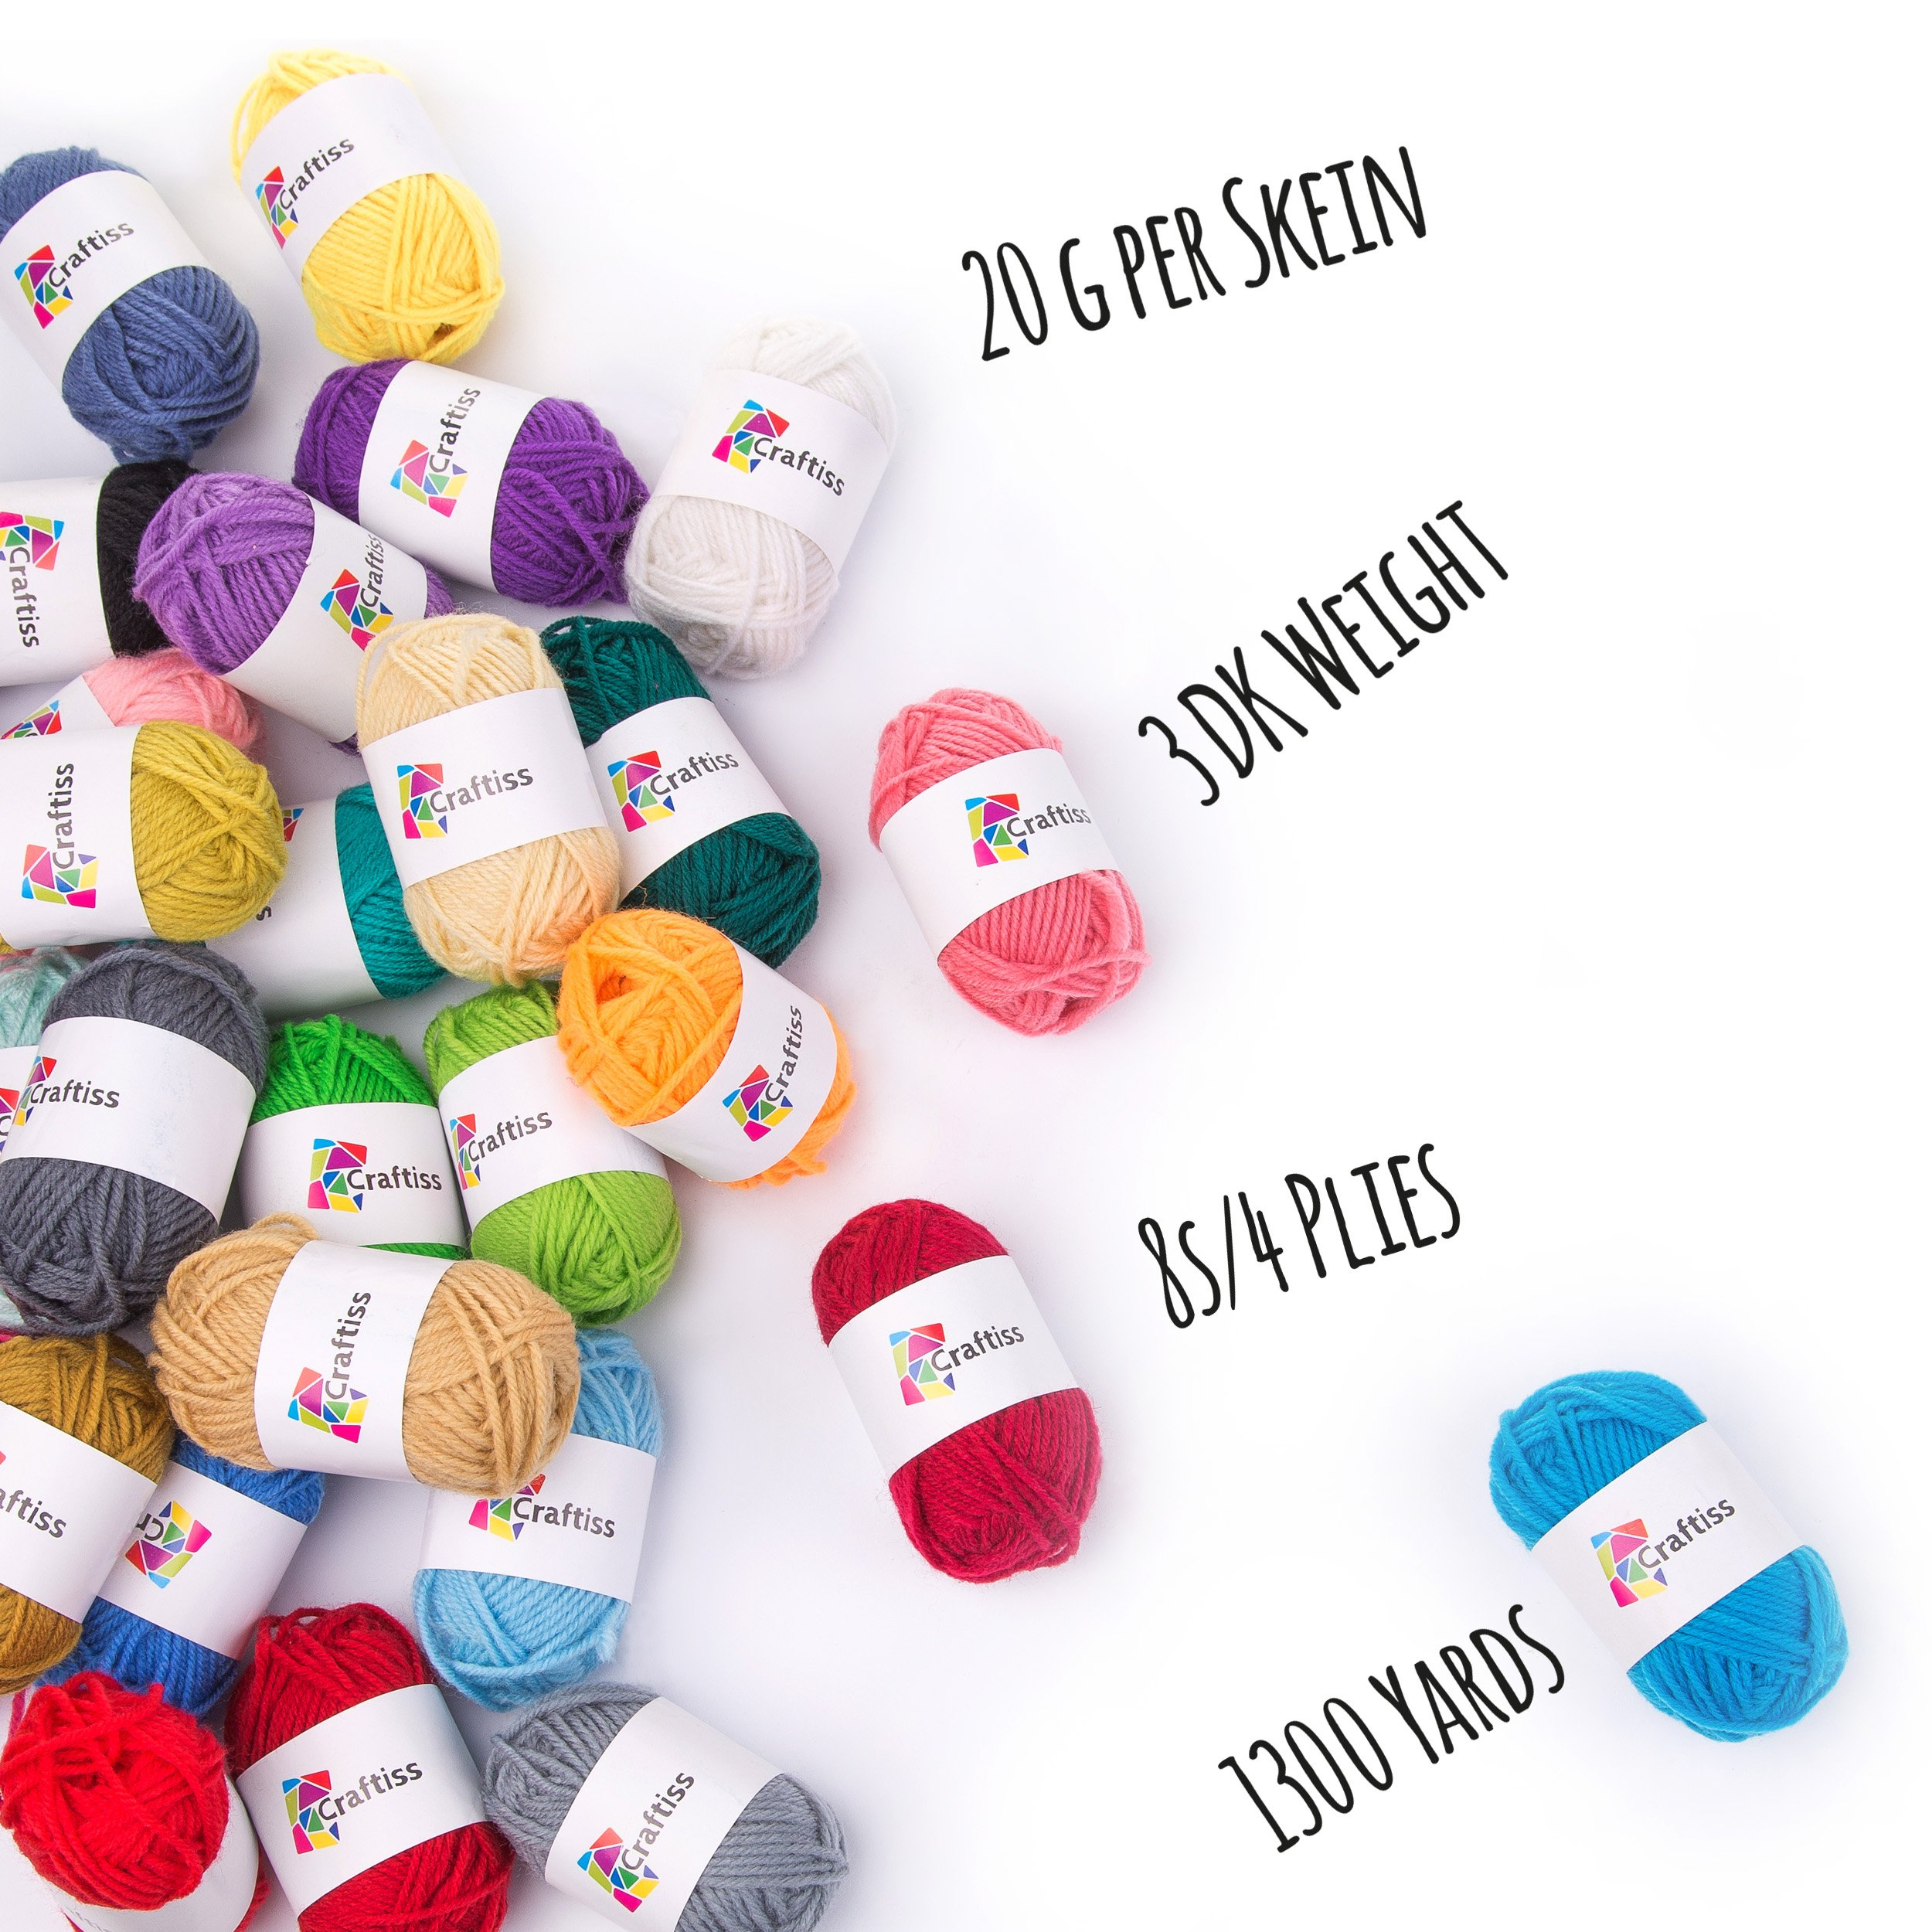 Craftiss 30 Unique Colors Acrylic Yarn Skeins ~ Bulk Yarn Kit ~ 1300 yards ~ Perfect for Any Knitting and Crochet Mini Project by Craftiss (Image #3)